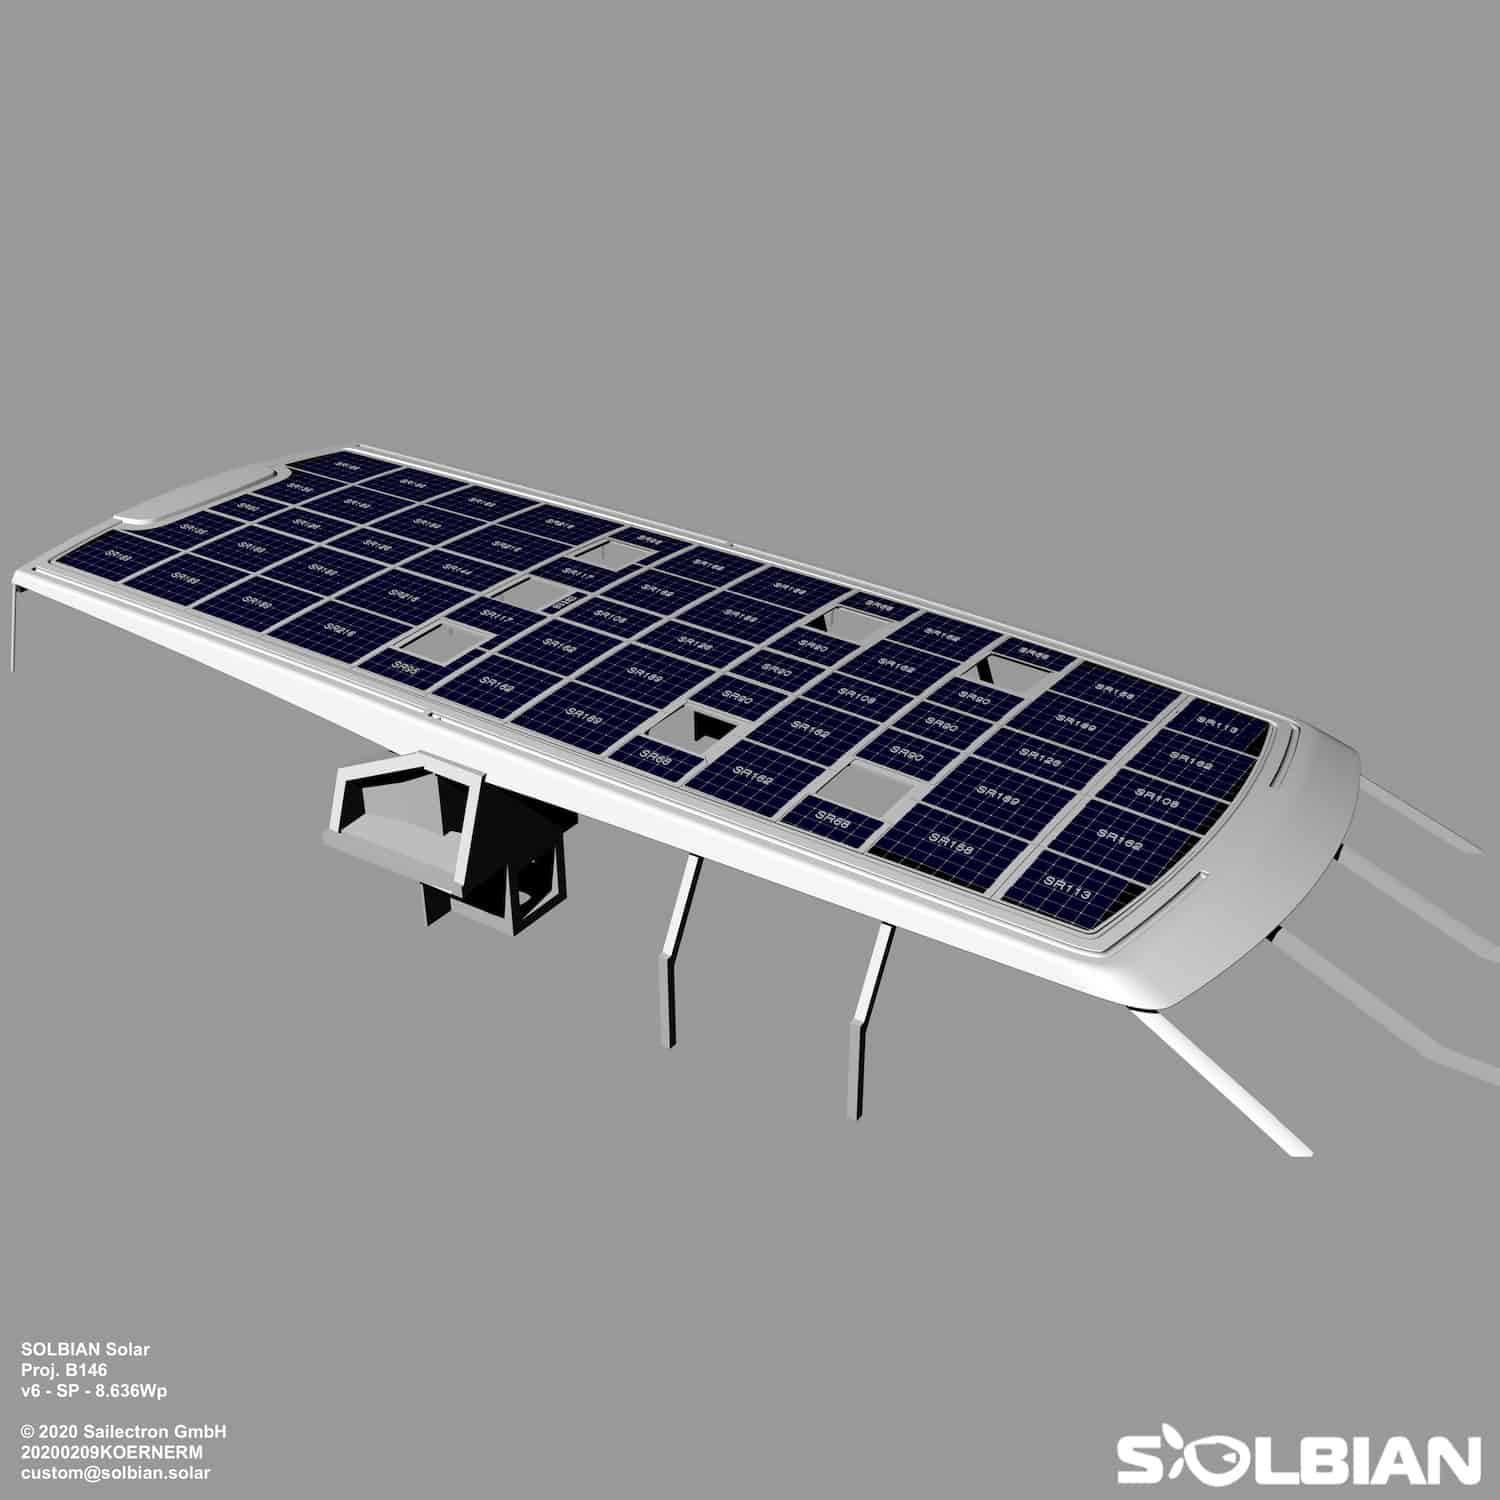 Baltic 146 PATH superyacht Solbian solar photovoltaik largest in the world walkable custom-made bespoke yacht sailing rendering